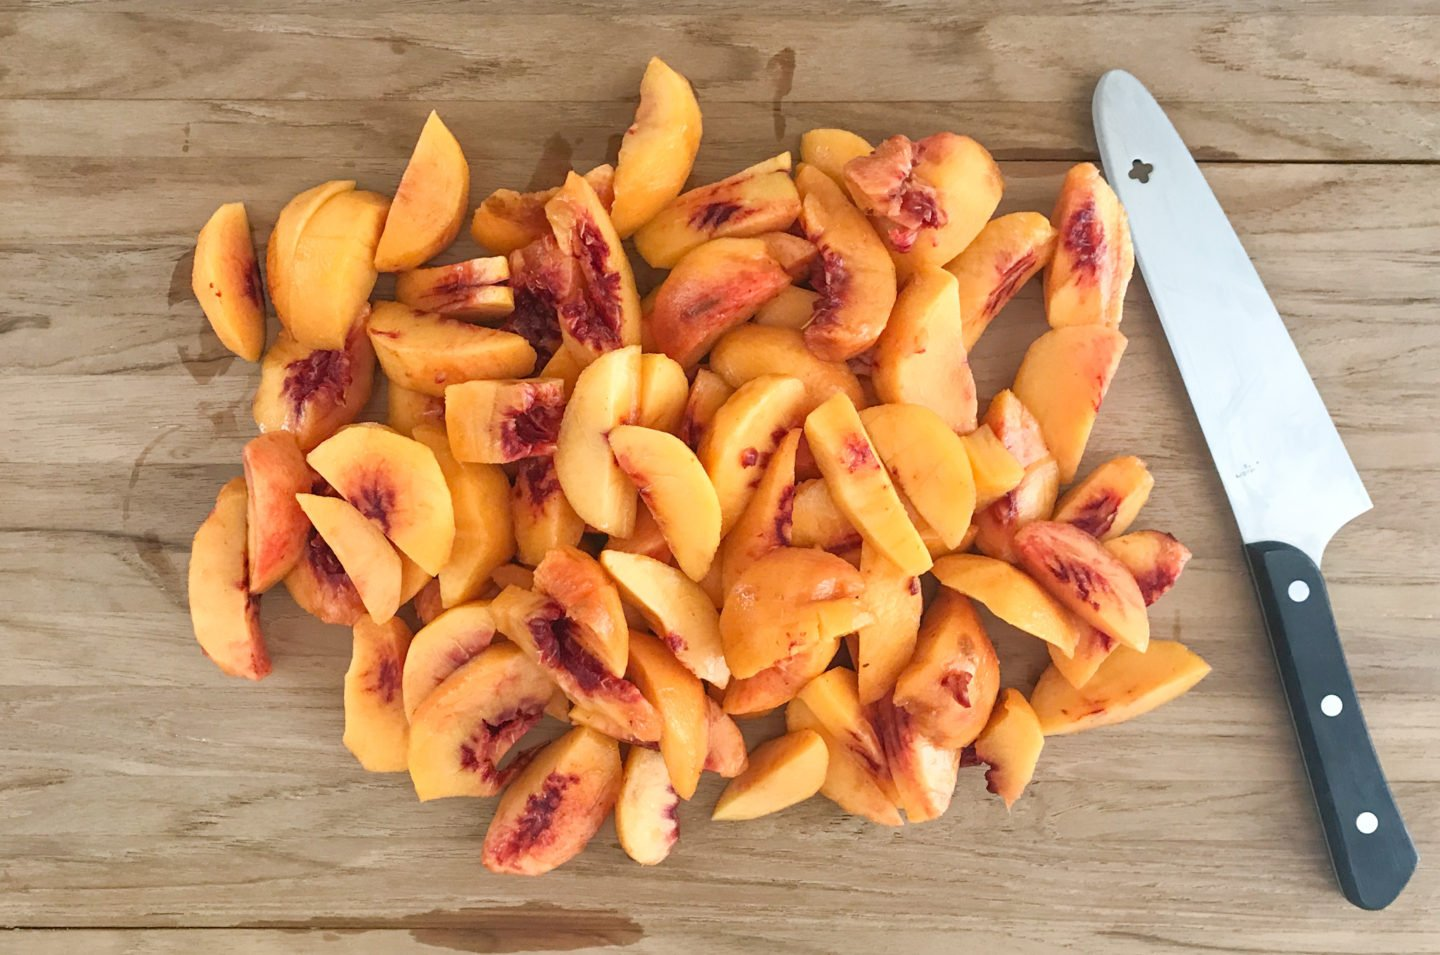 Peel, remove the pits and slice the fresh peaches into small wedges.